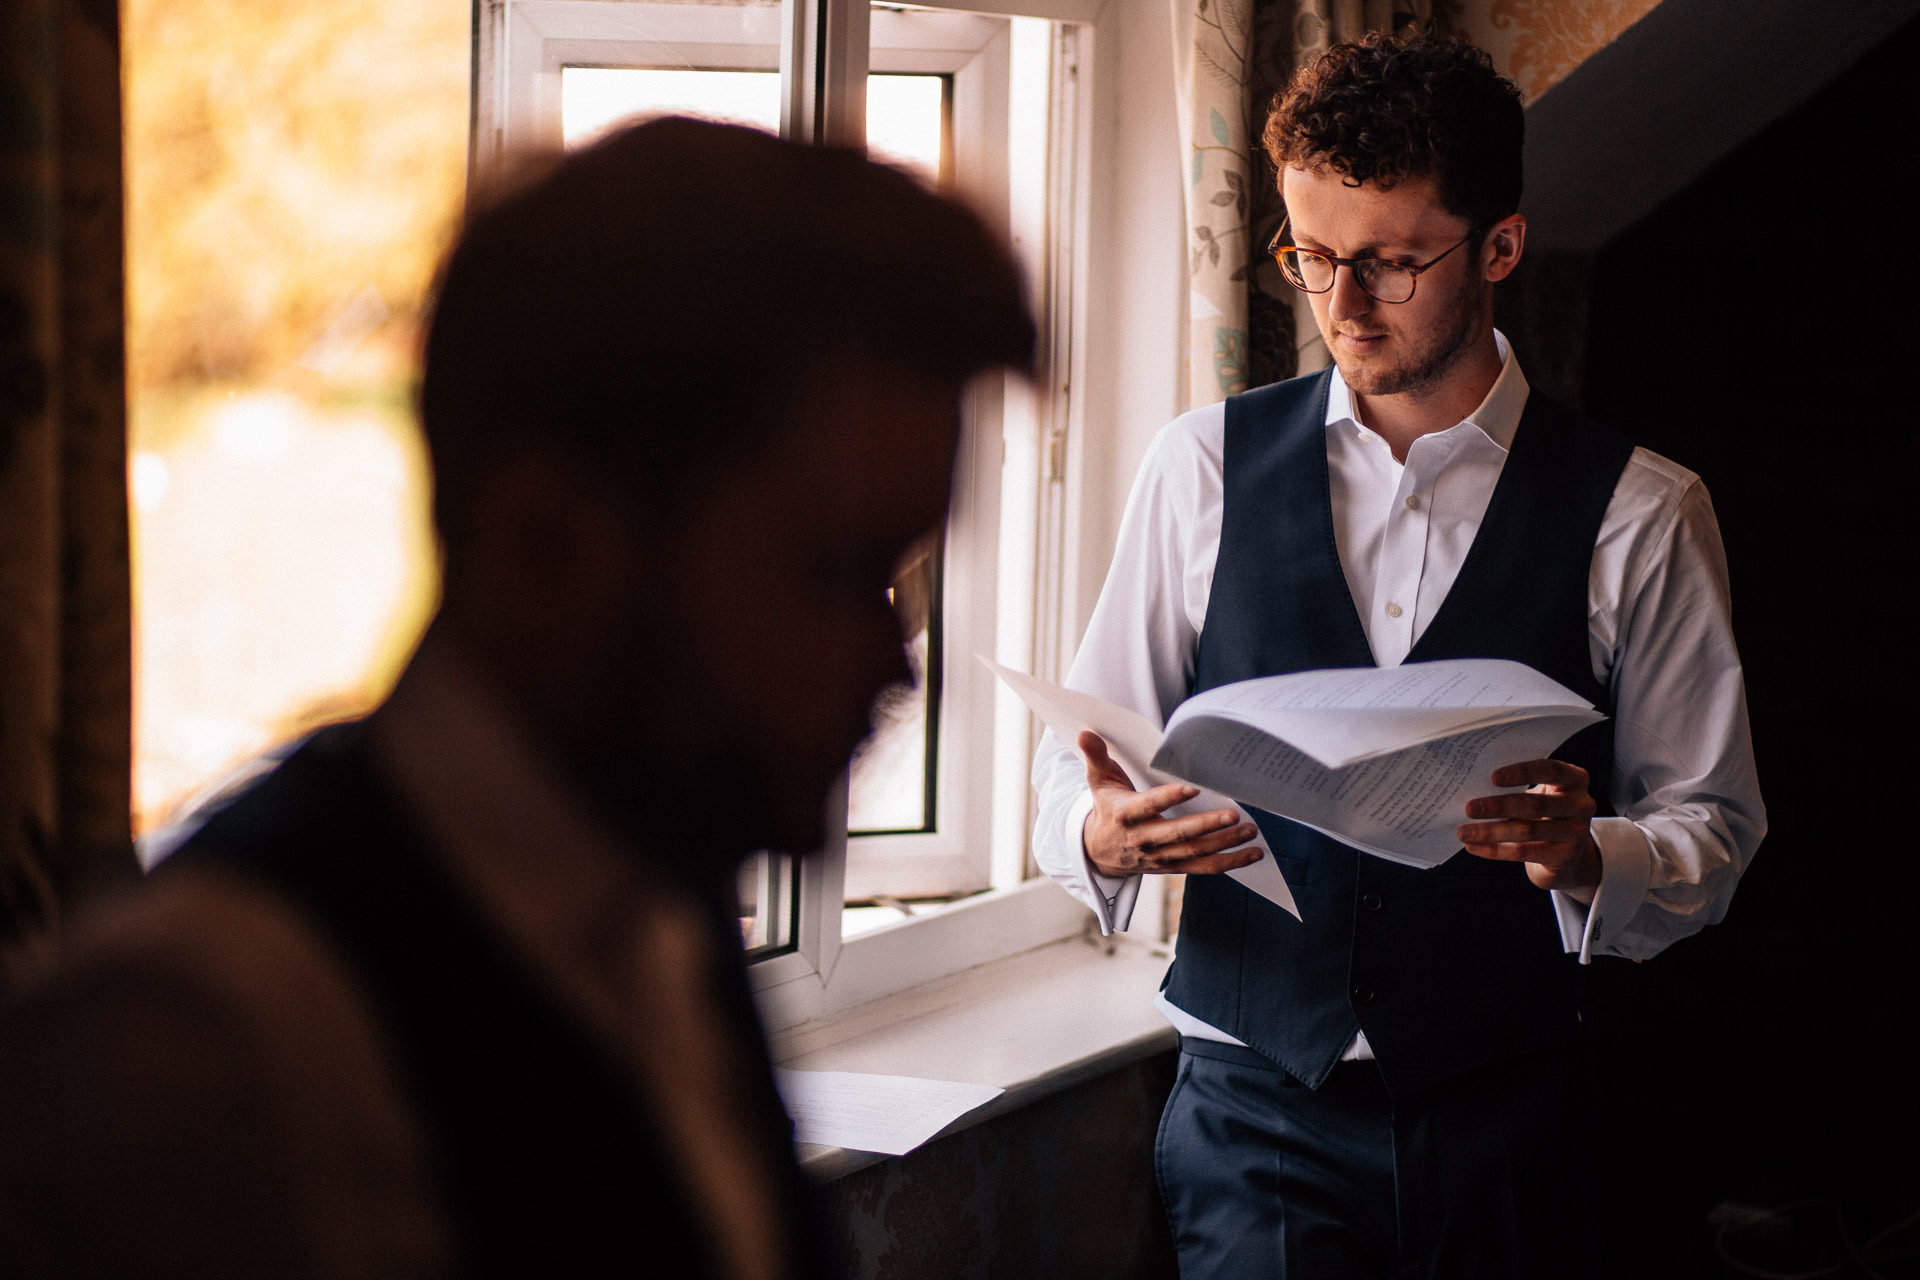 The Wild Boar Wedding Photography - EM - best man reading speech in the window